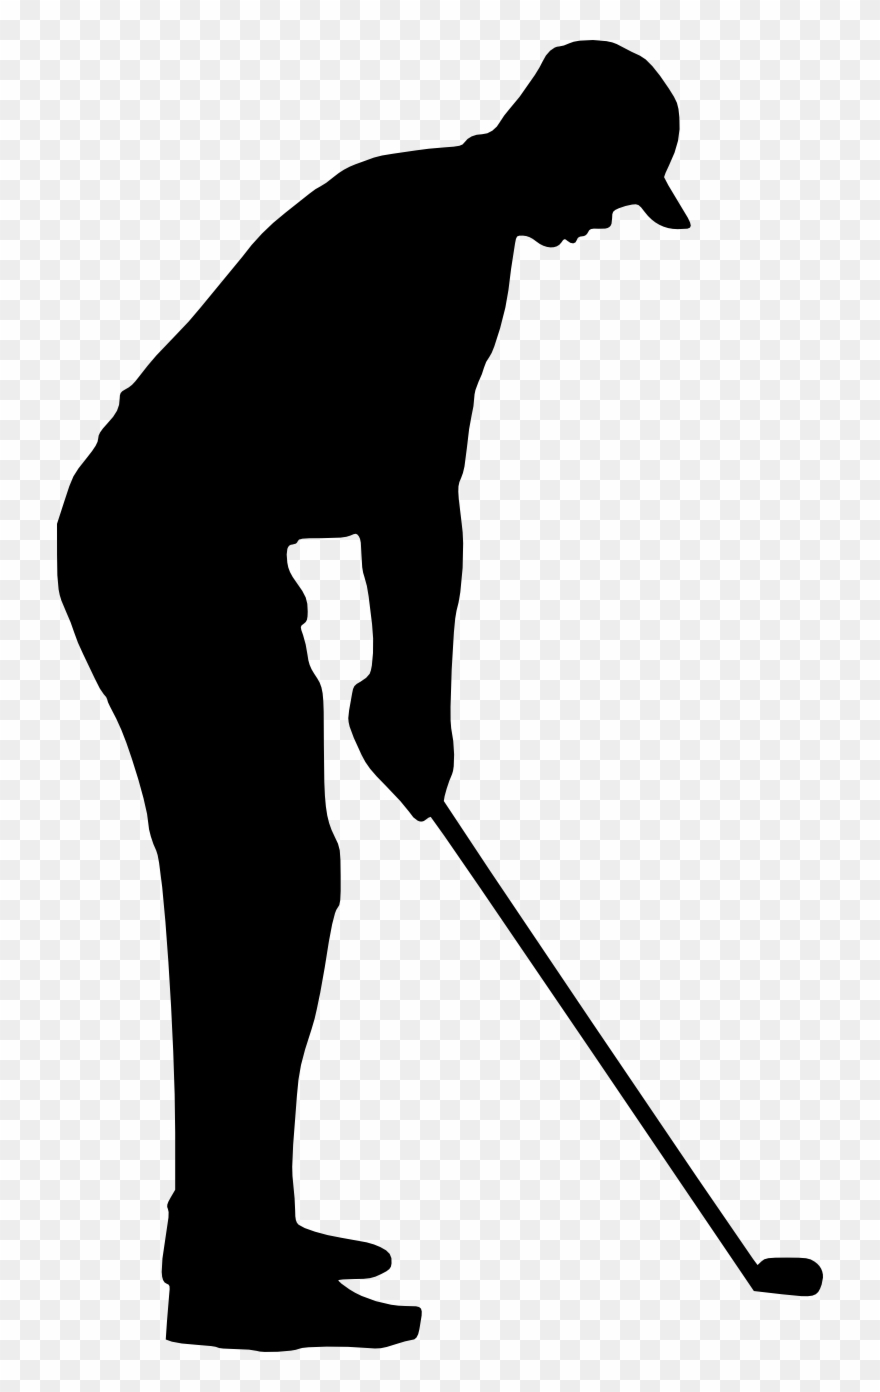 png royalty free stock Golfing retro sport transparent. Golf clipart